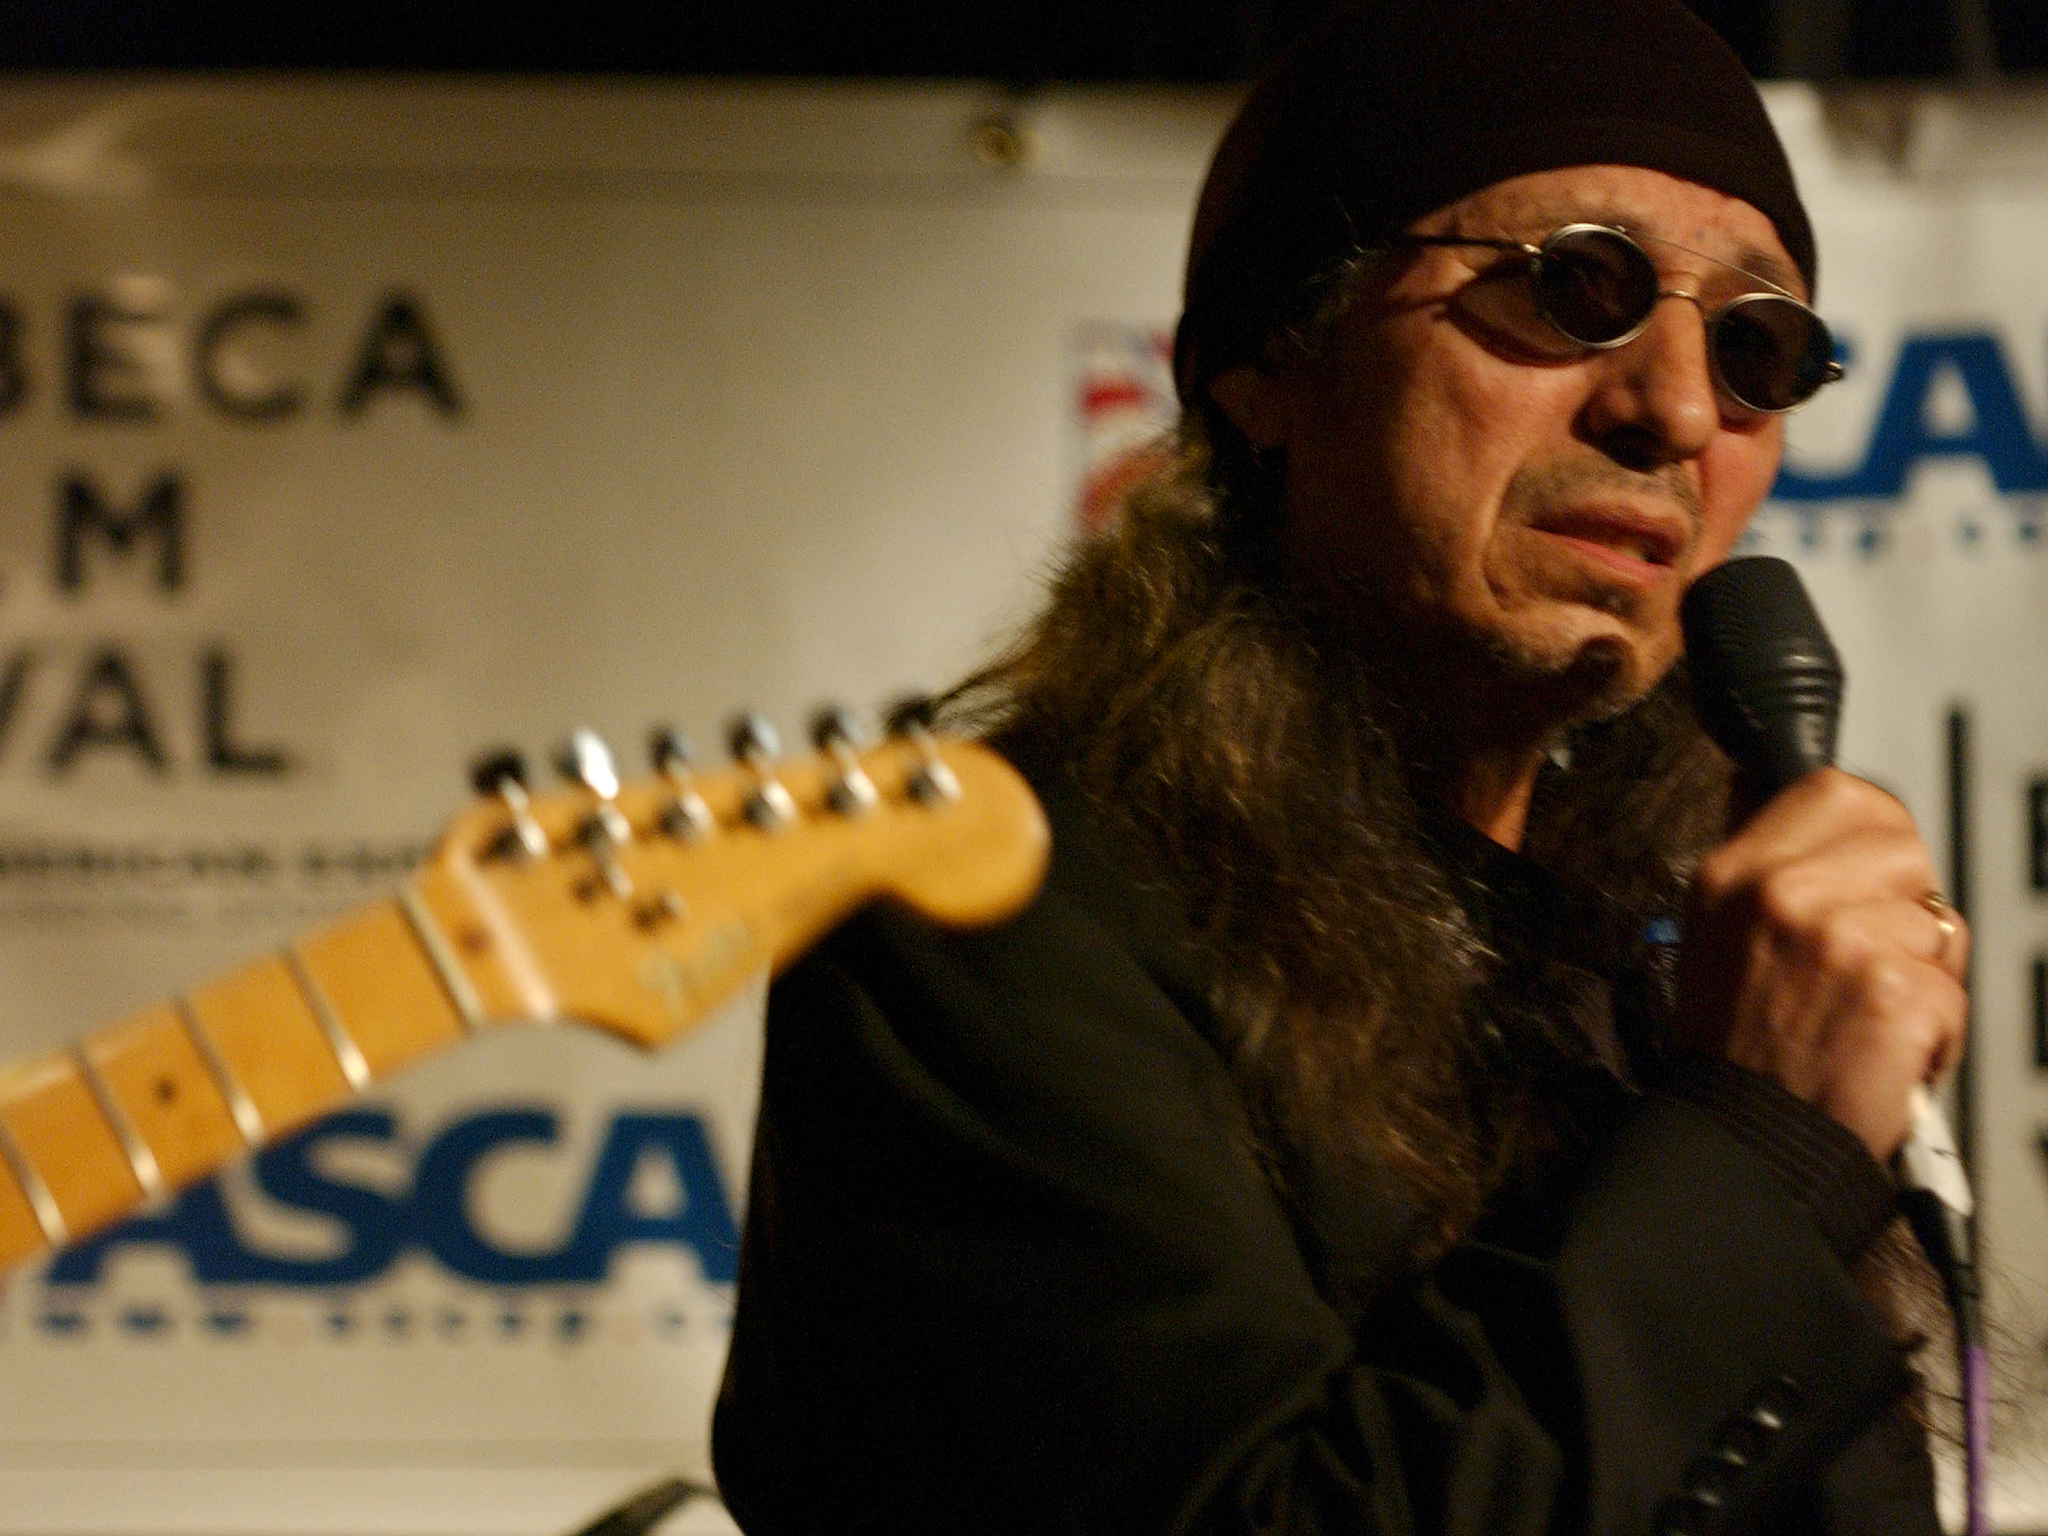 NEW YORK - APRIL 28:  Singer John Trudell Performs During The Tribeca Film Festival Music Panel At The ASCAP Lounge. The ASCAP Music Lounge Is Dedicated To Showcasing The Exceptional Talent Of New Top Emerging Artists At The Knitting Factory April 28 2005 In New York City.  (Photo By Bryan Bedder/Getty Images)